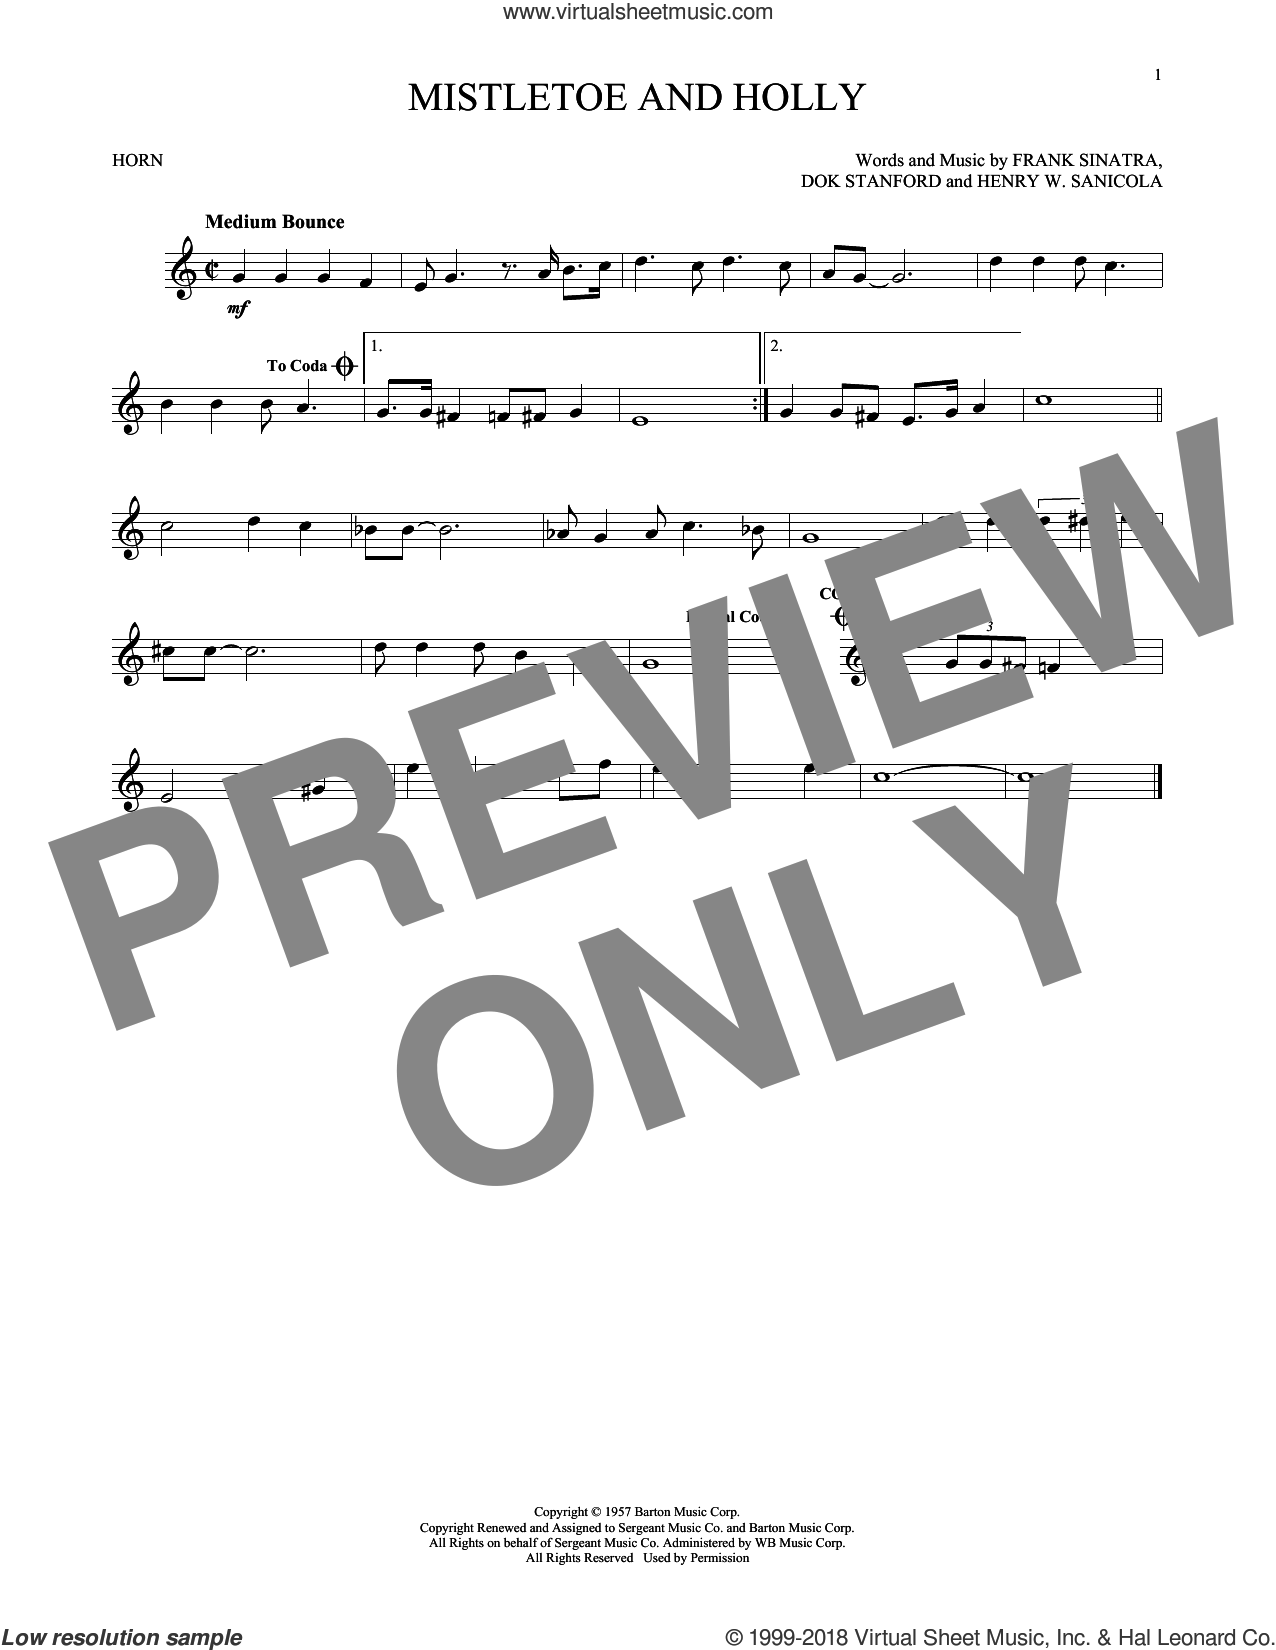 Mistletoe And Holly sheet music for horn solo by Frank Sinatra, Dok Stanford and Henry W. Sanicola, intermediate skill level